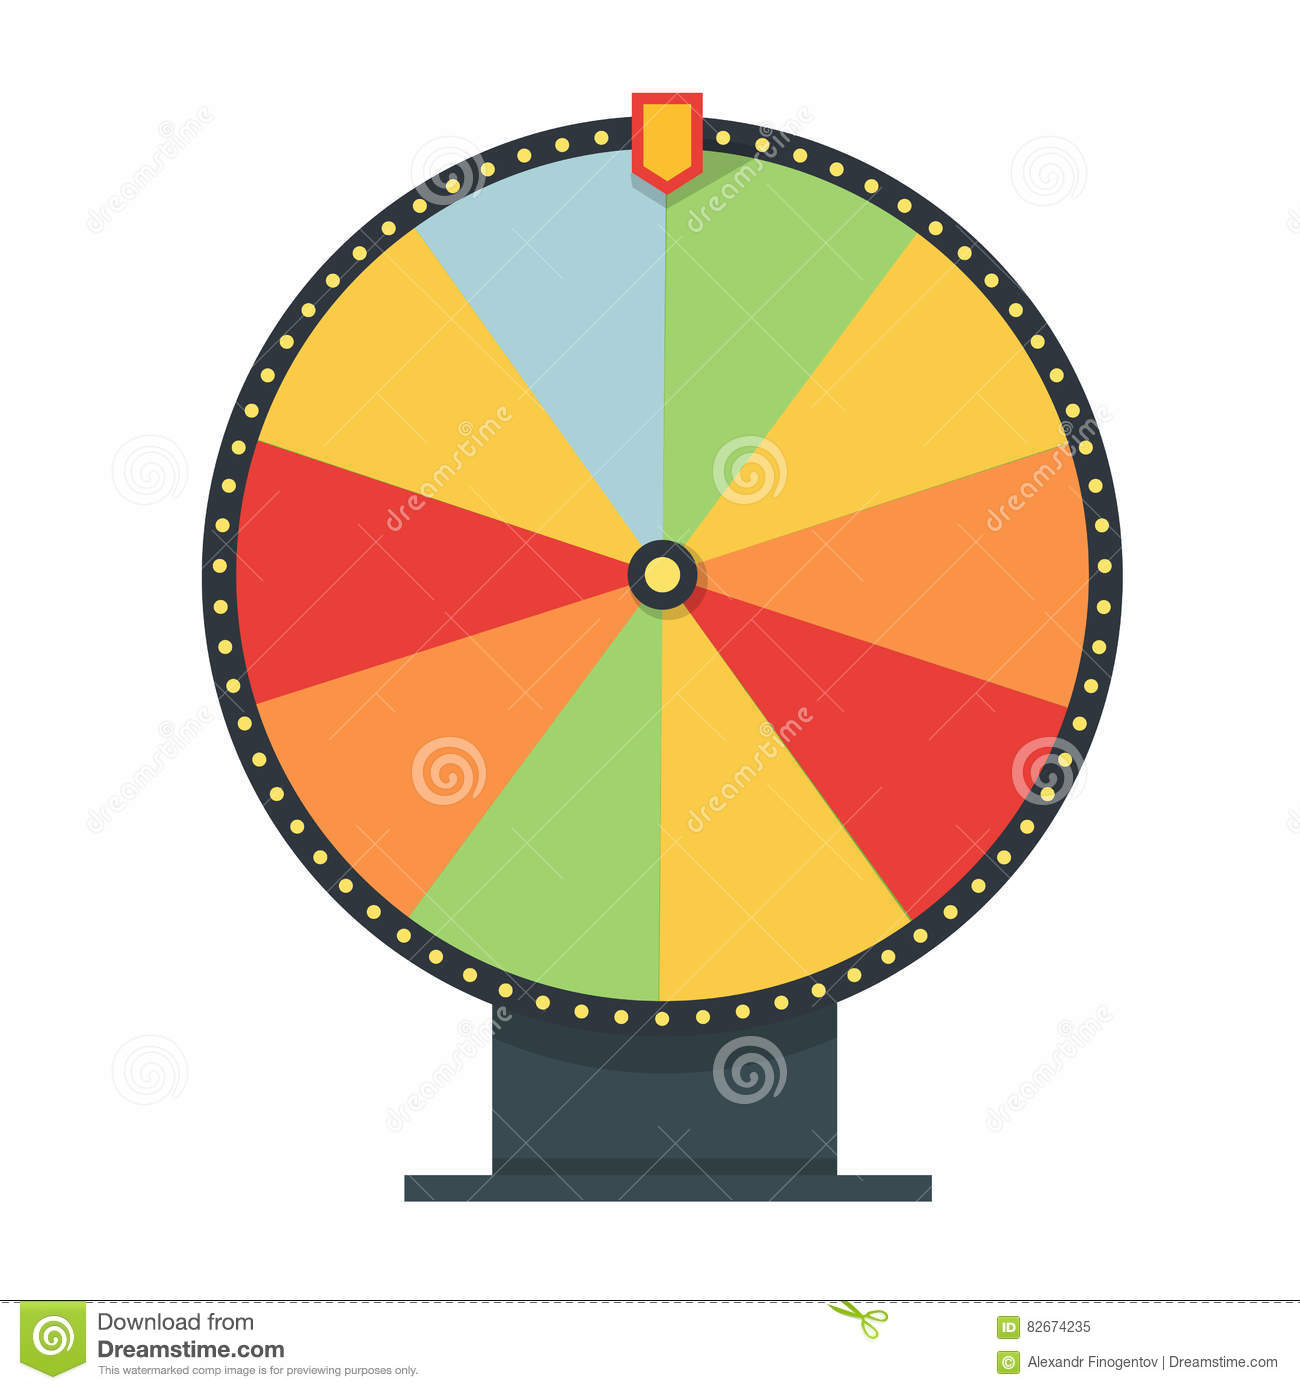 online wheel of fortune template - gambling concept vector flat style illustration cartoon